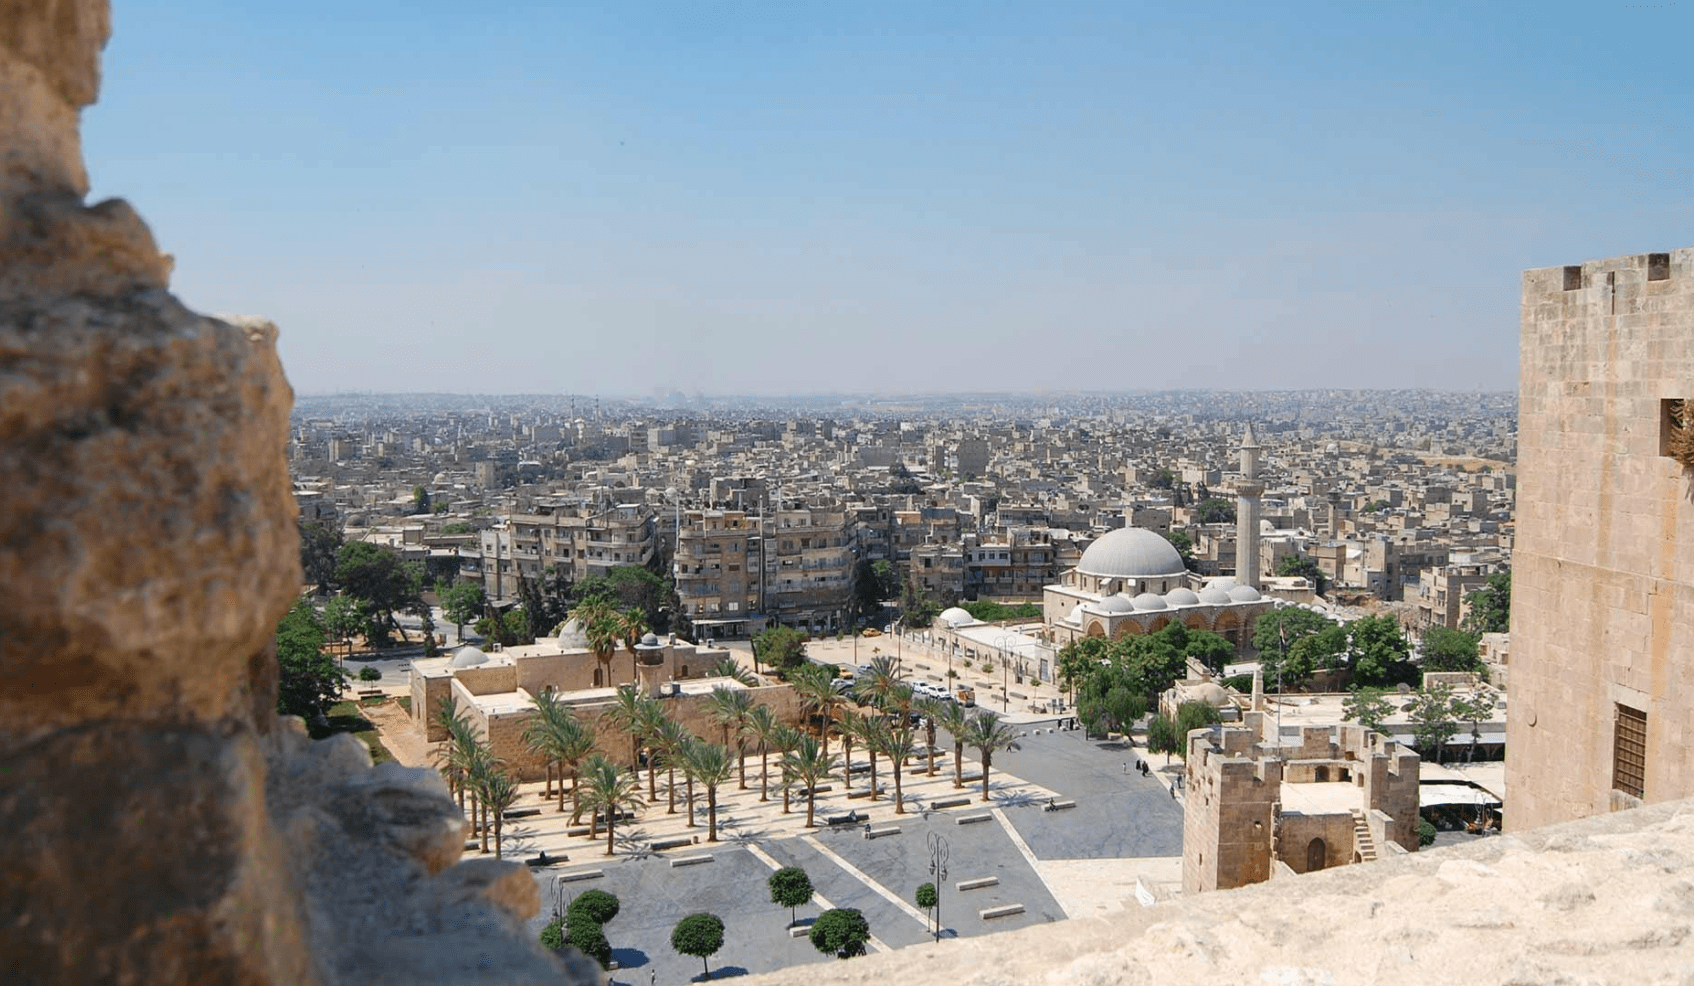 Aleppo View of The City 2010